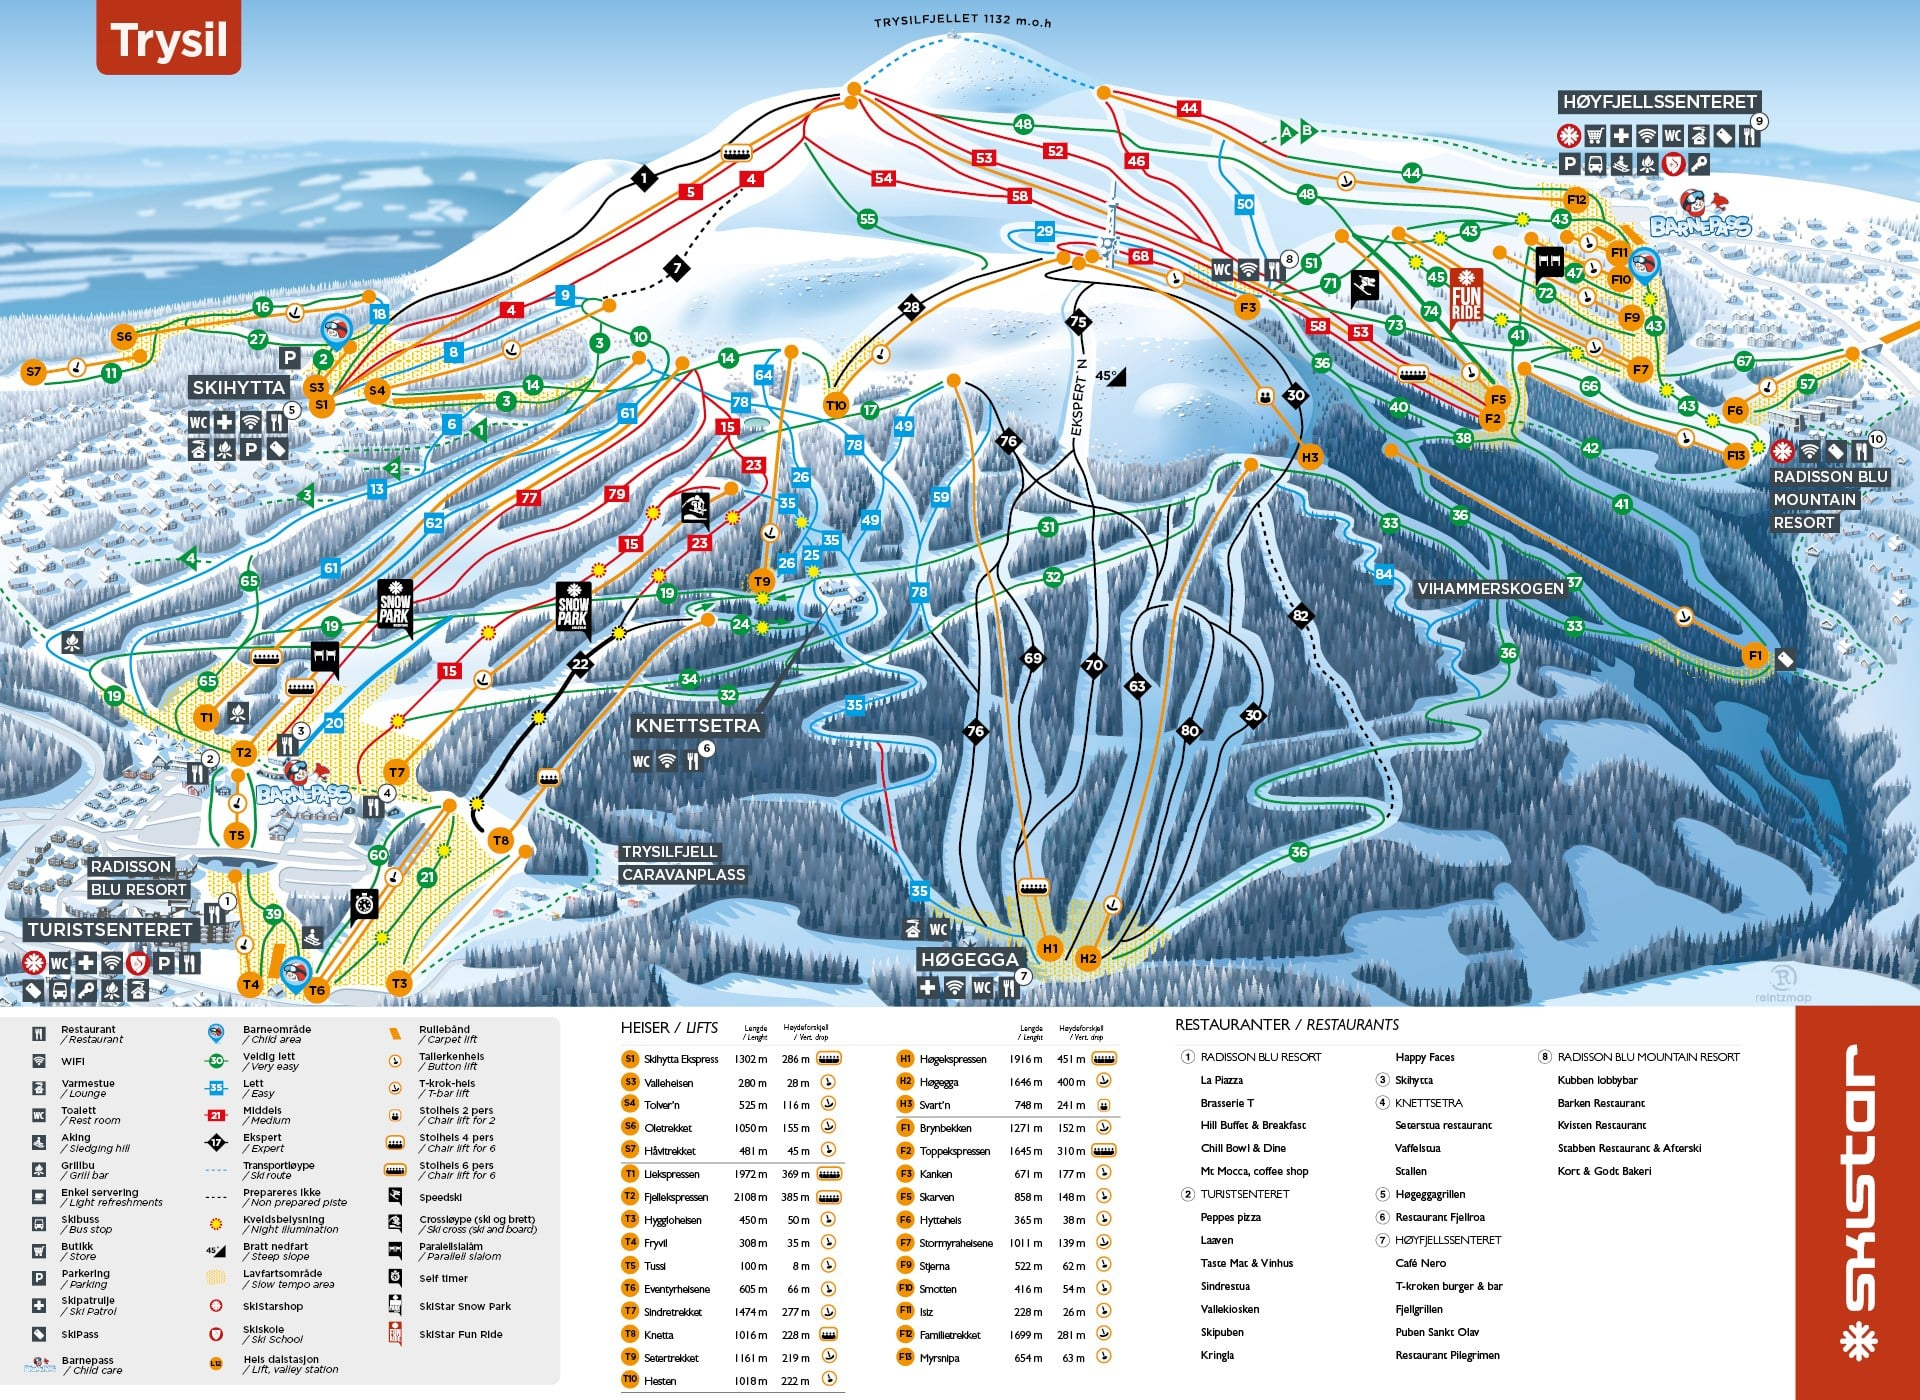 Trysil Piste / Trail Map